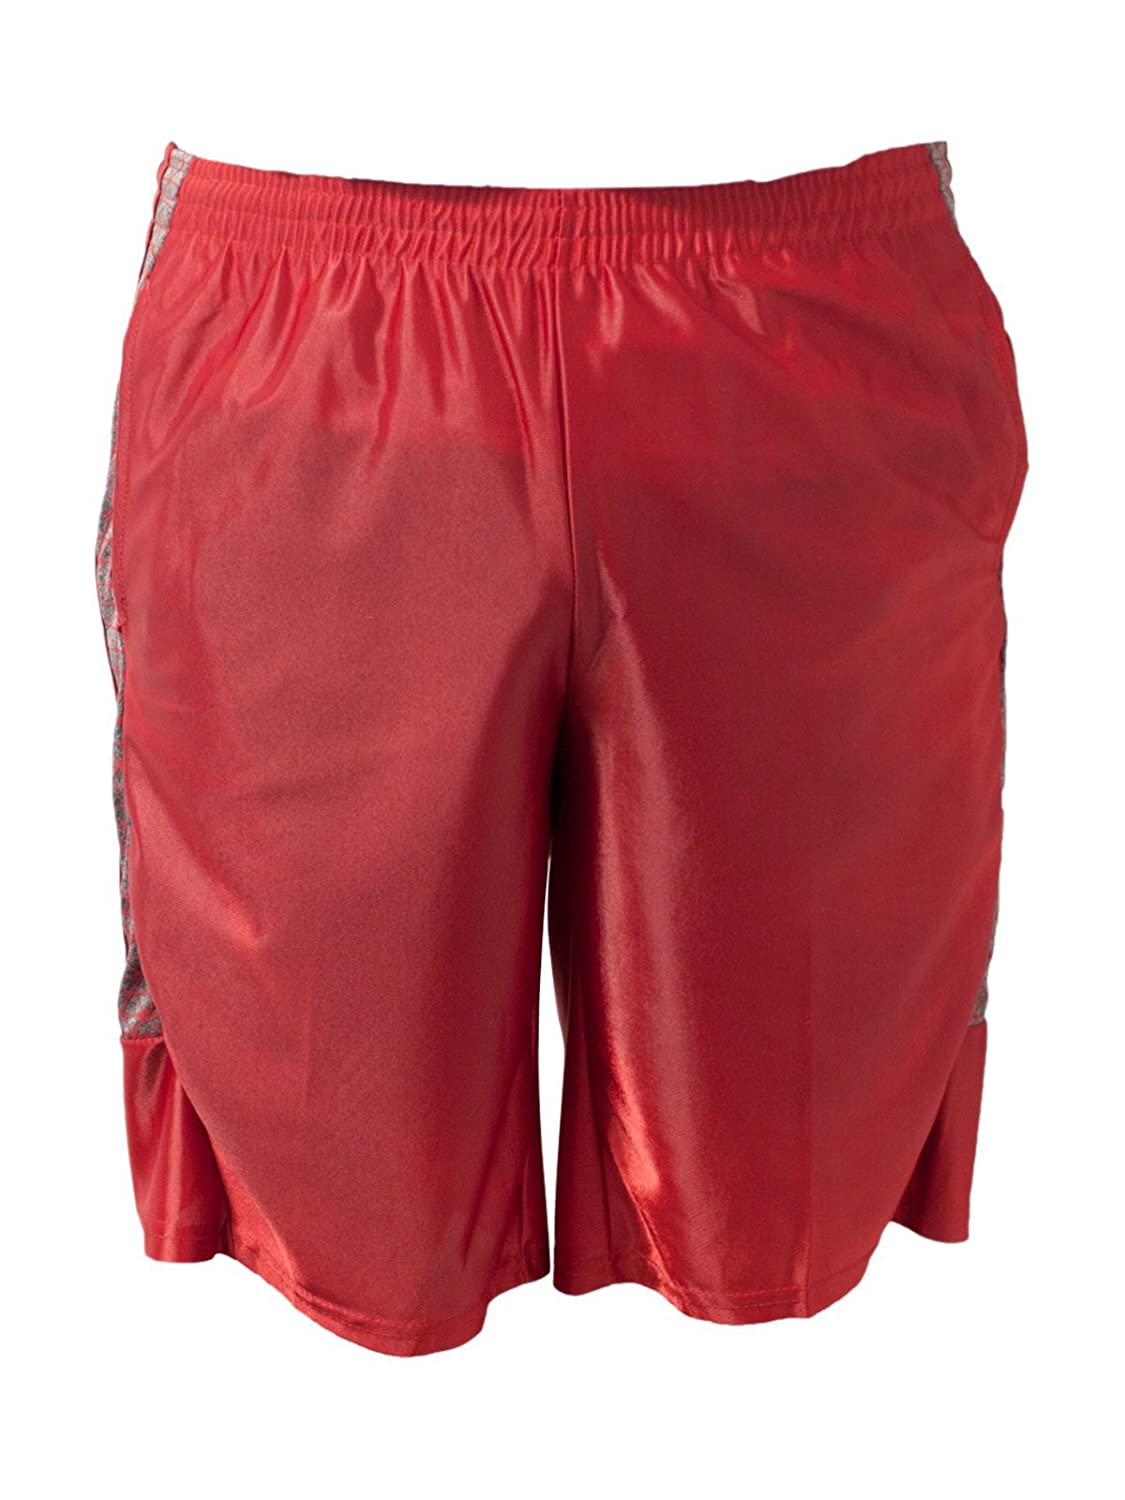 6th-Man Dry Fit Basketball Short-SM320